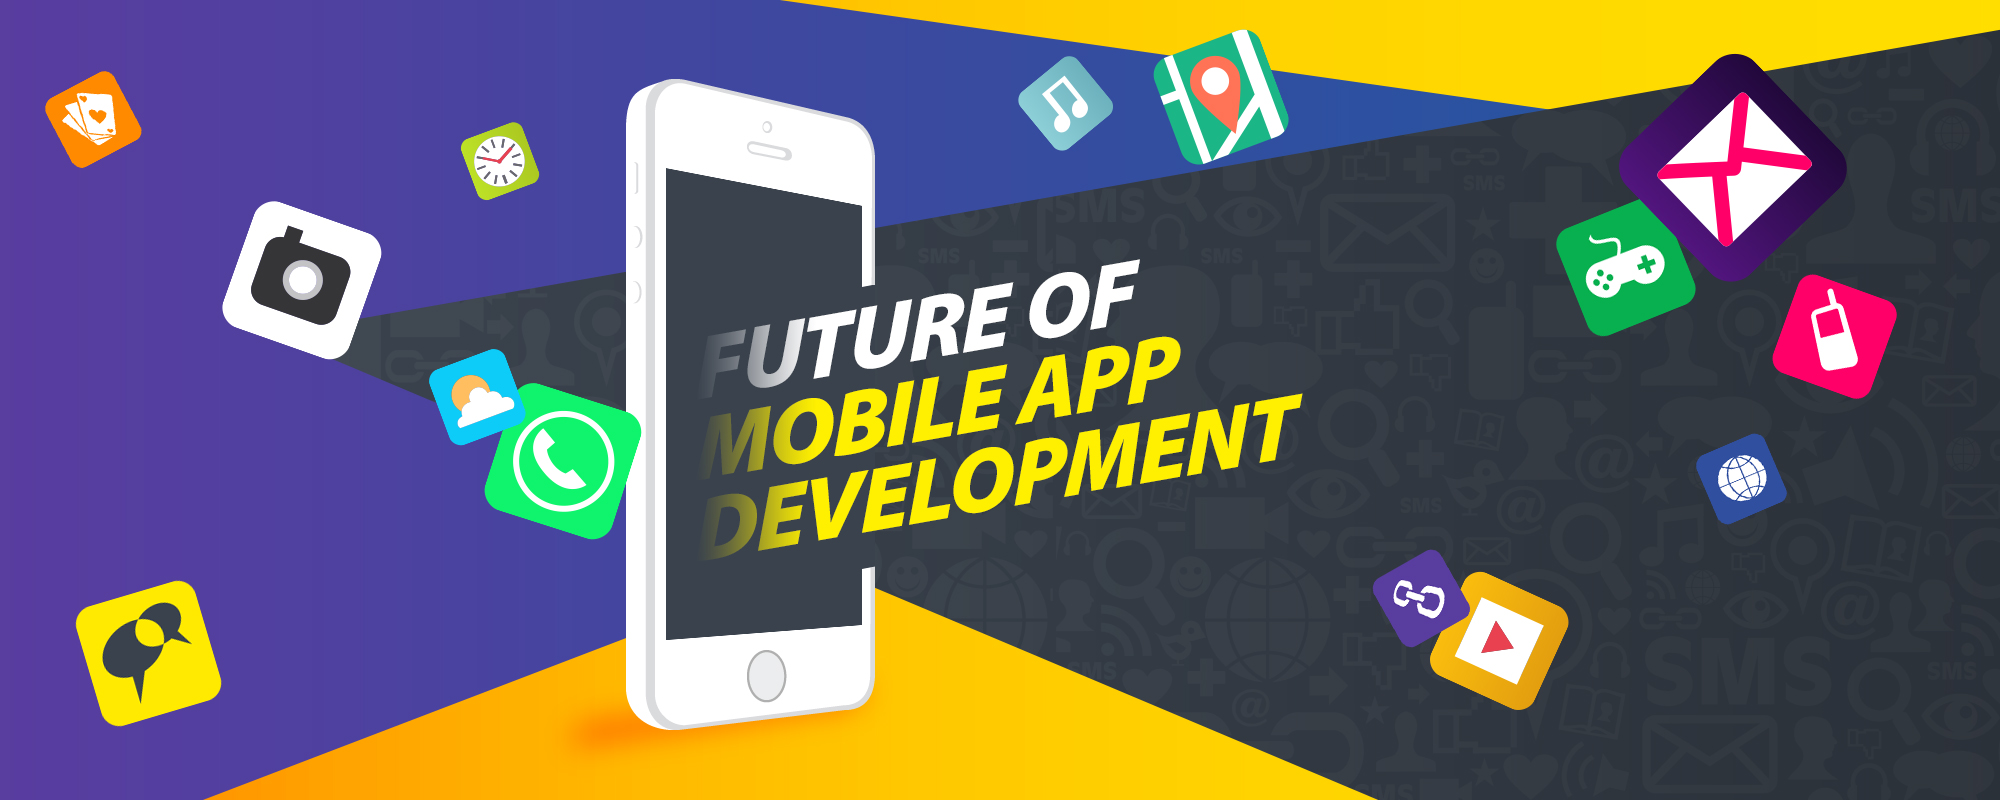 Journey and Future of Mobile App Development Market